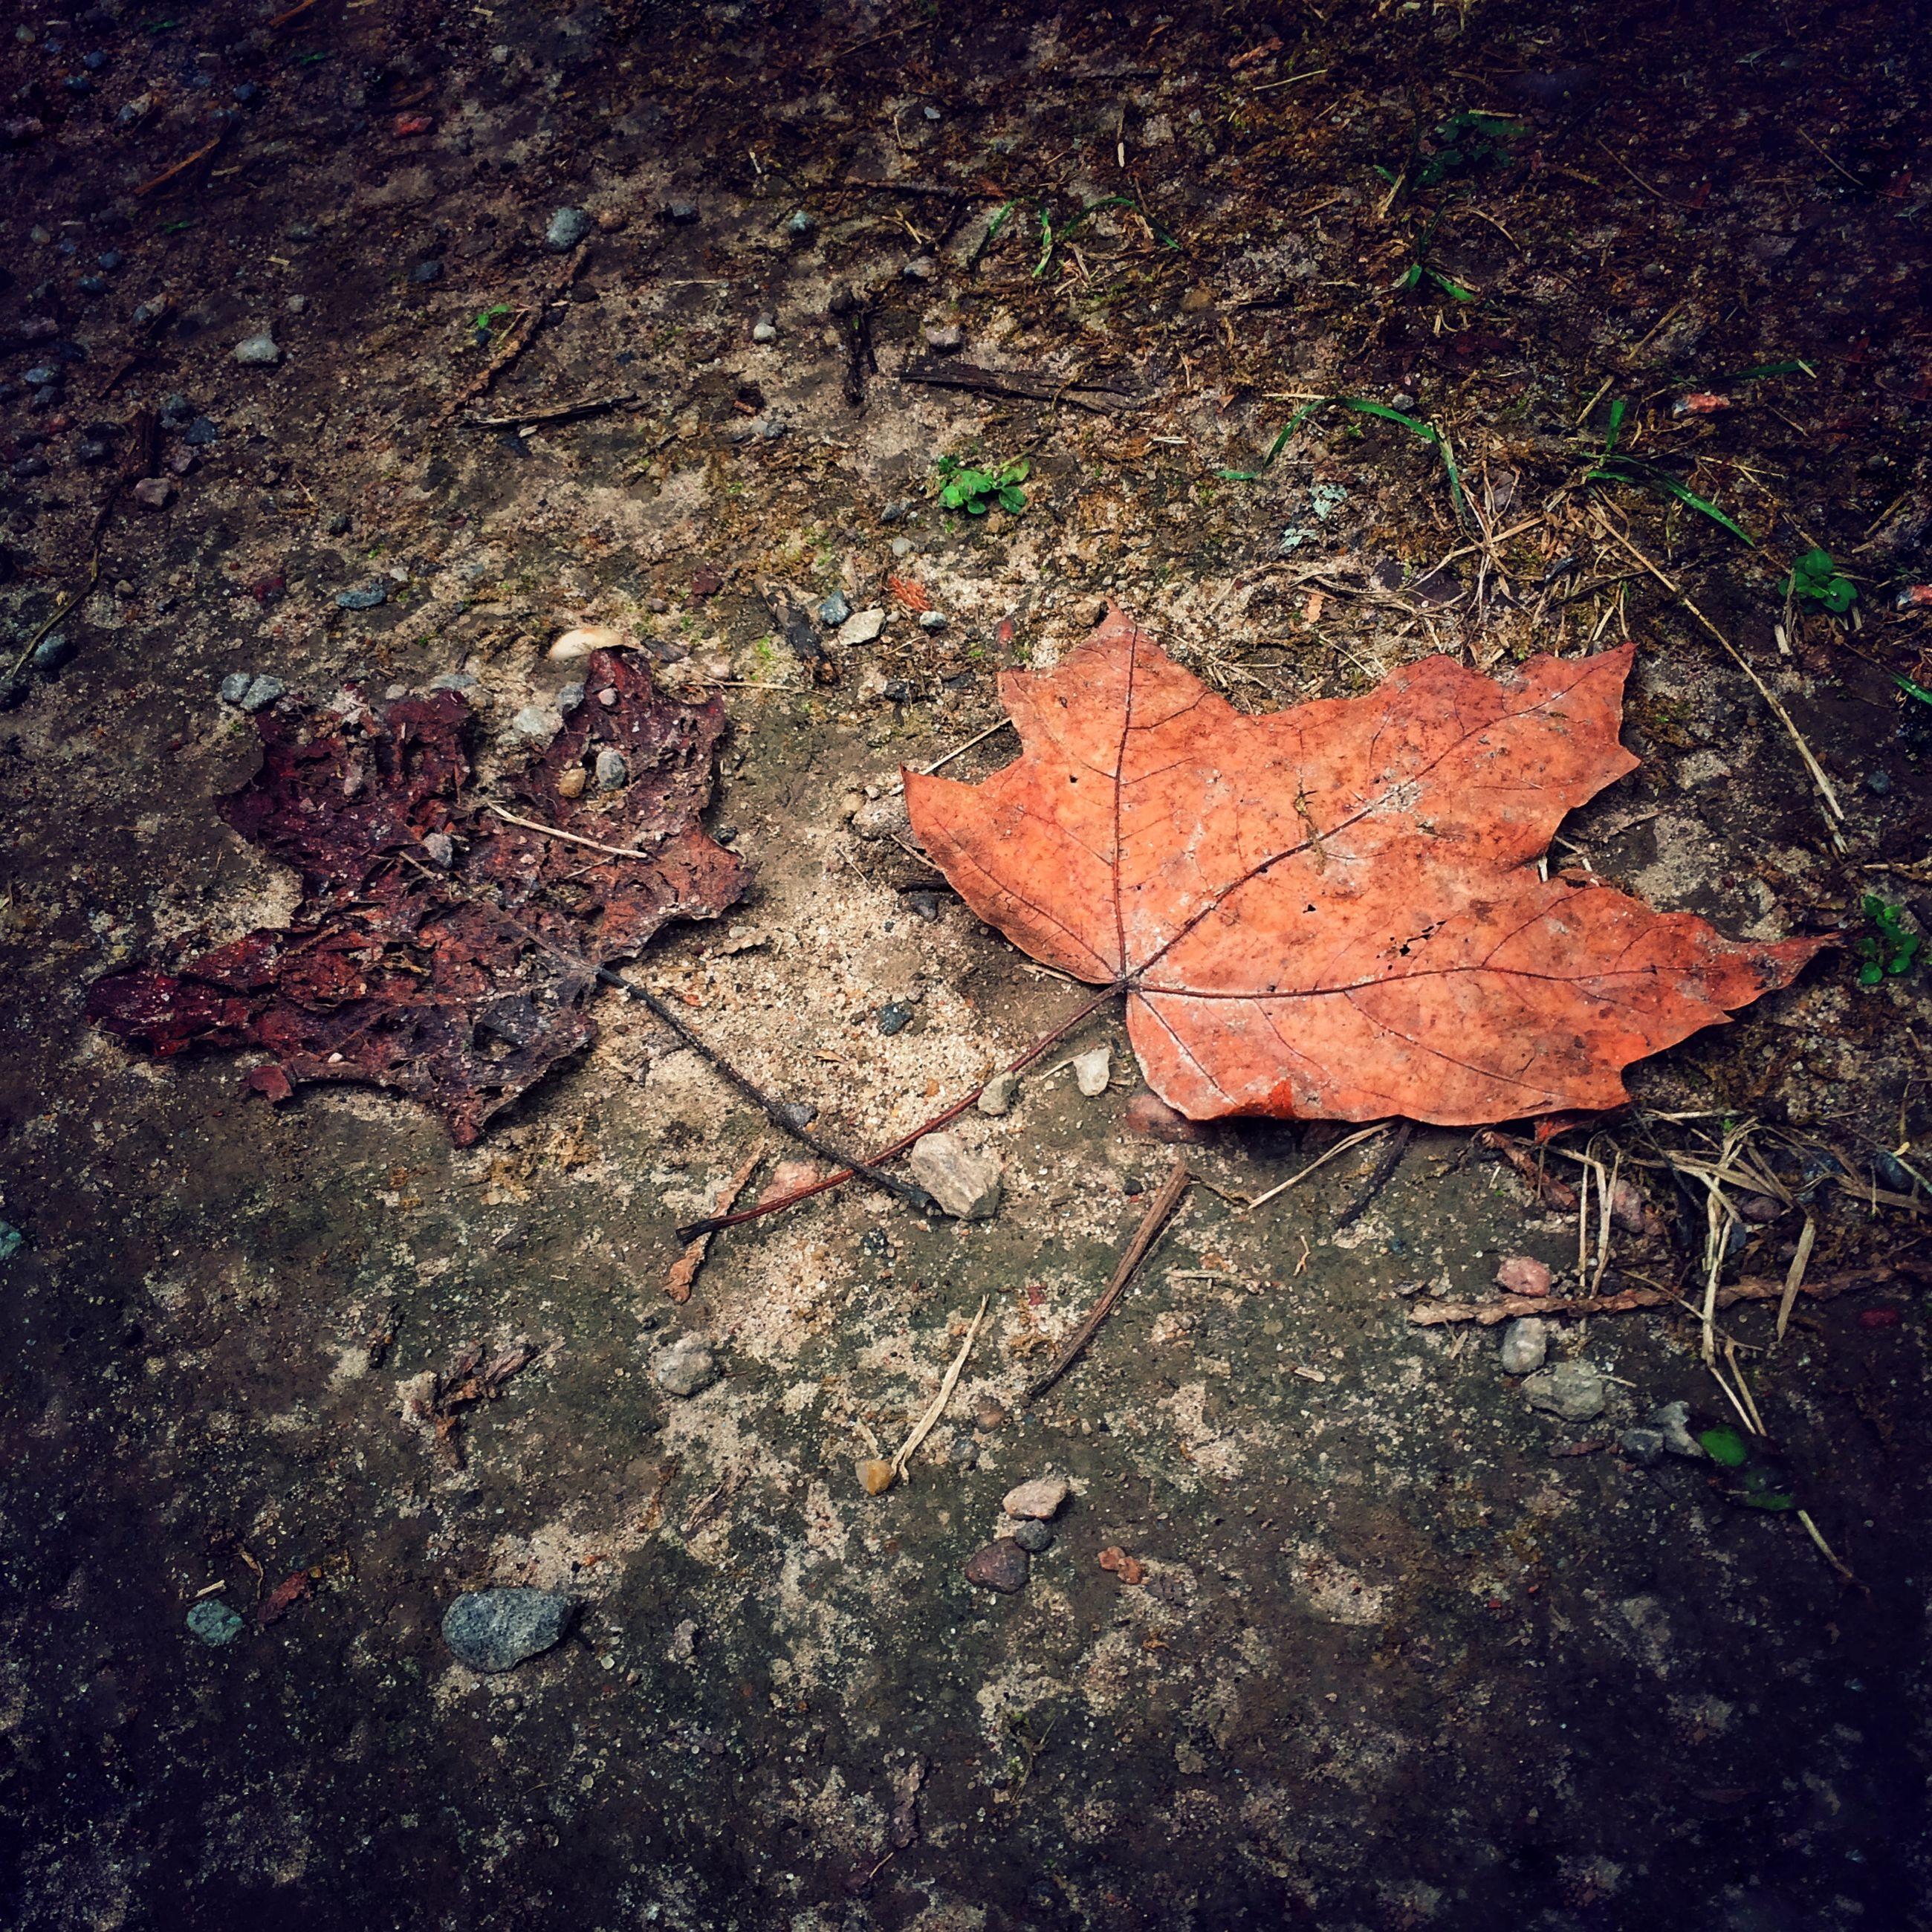 high angle view, textured, leaf, autumn, dry, fallen, full frame, damaged, abandoned, street, outdoors, cracked, backgrounds, no people, ground, day, change, nature, deterioration, close-up